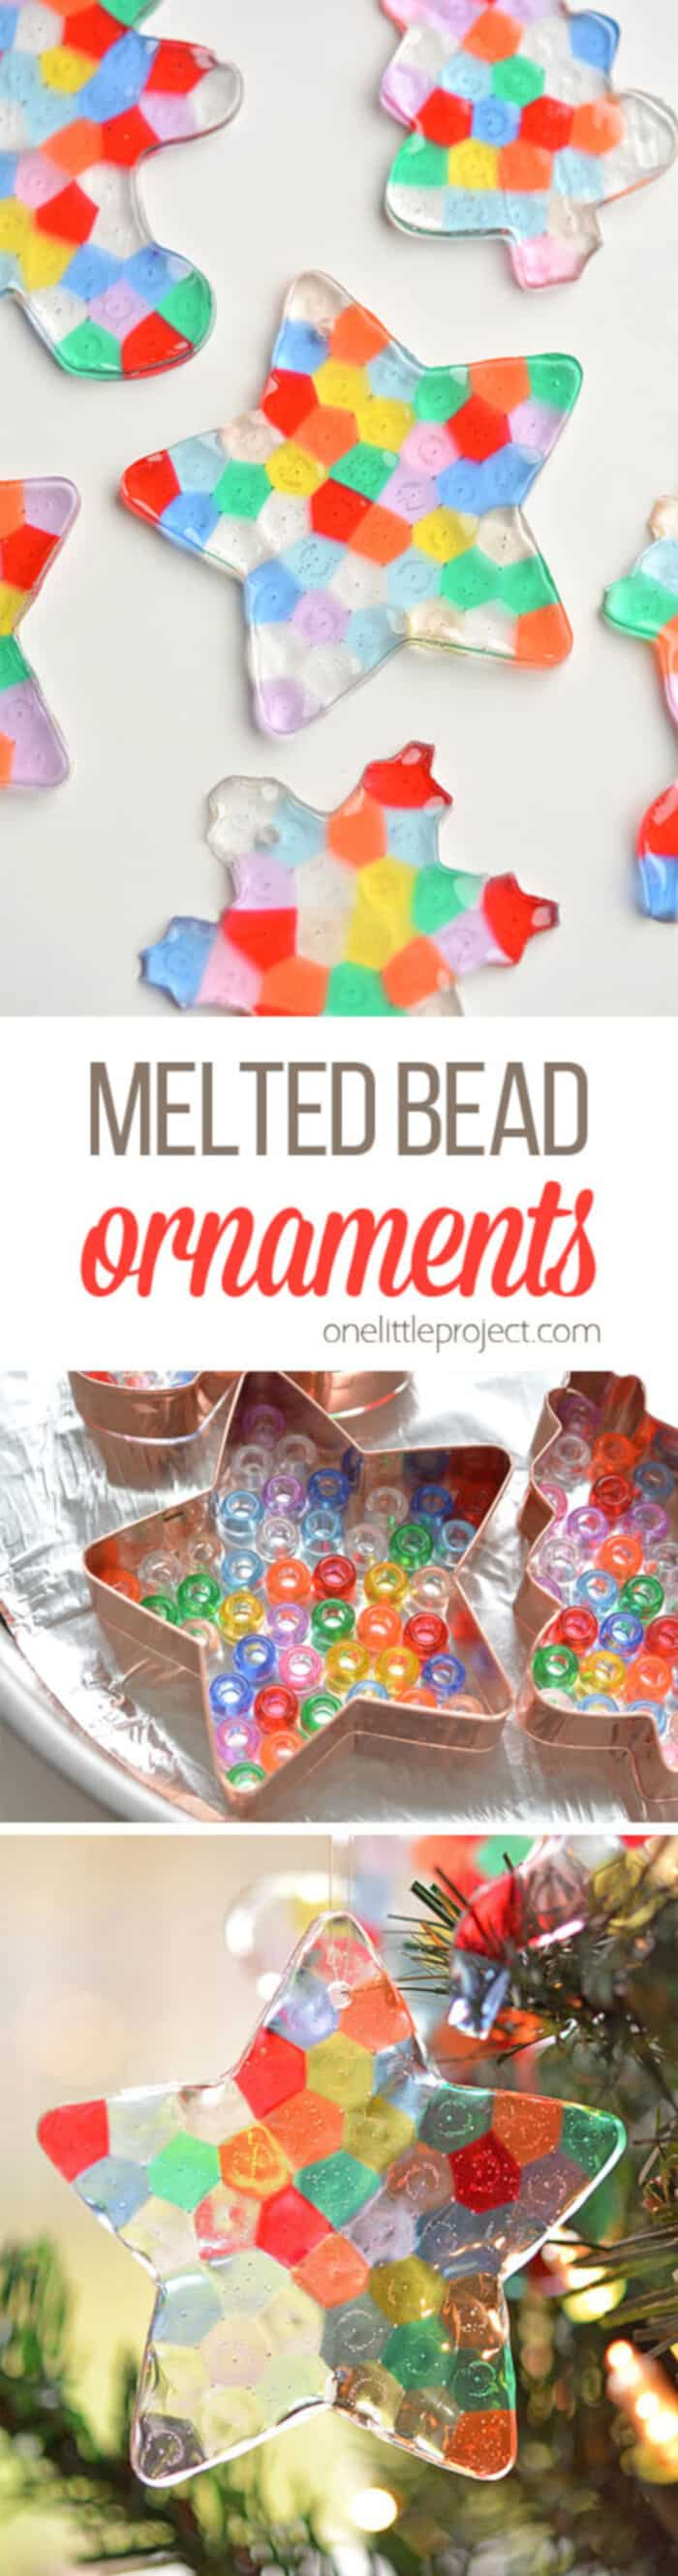 Melted Bead Ornaments by One Little Project